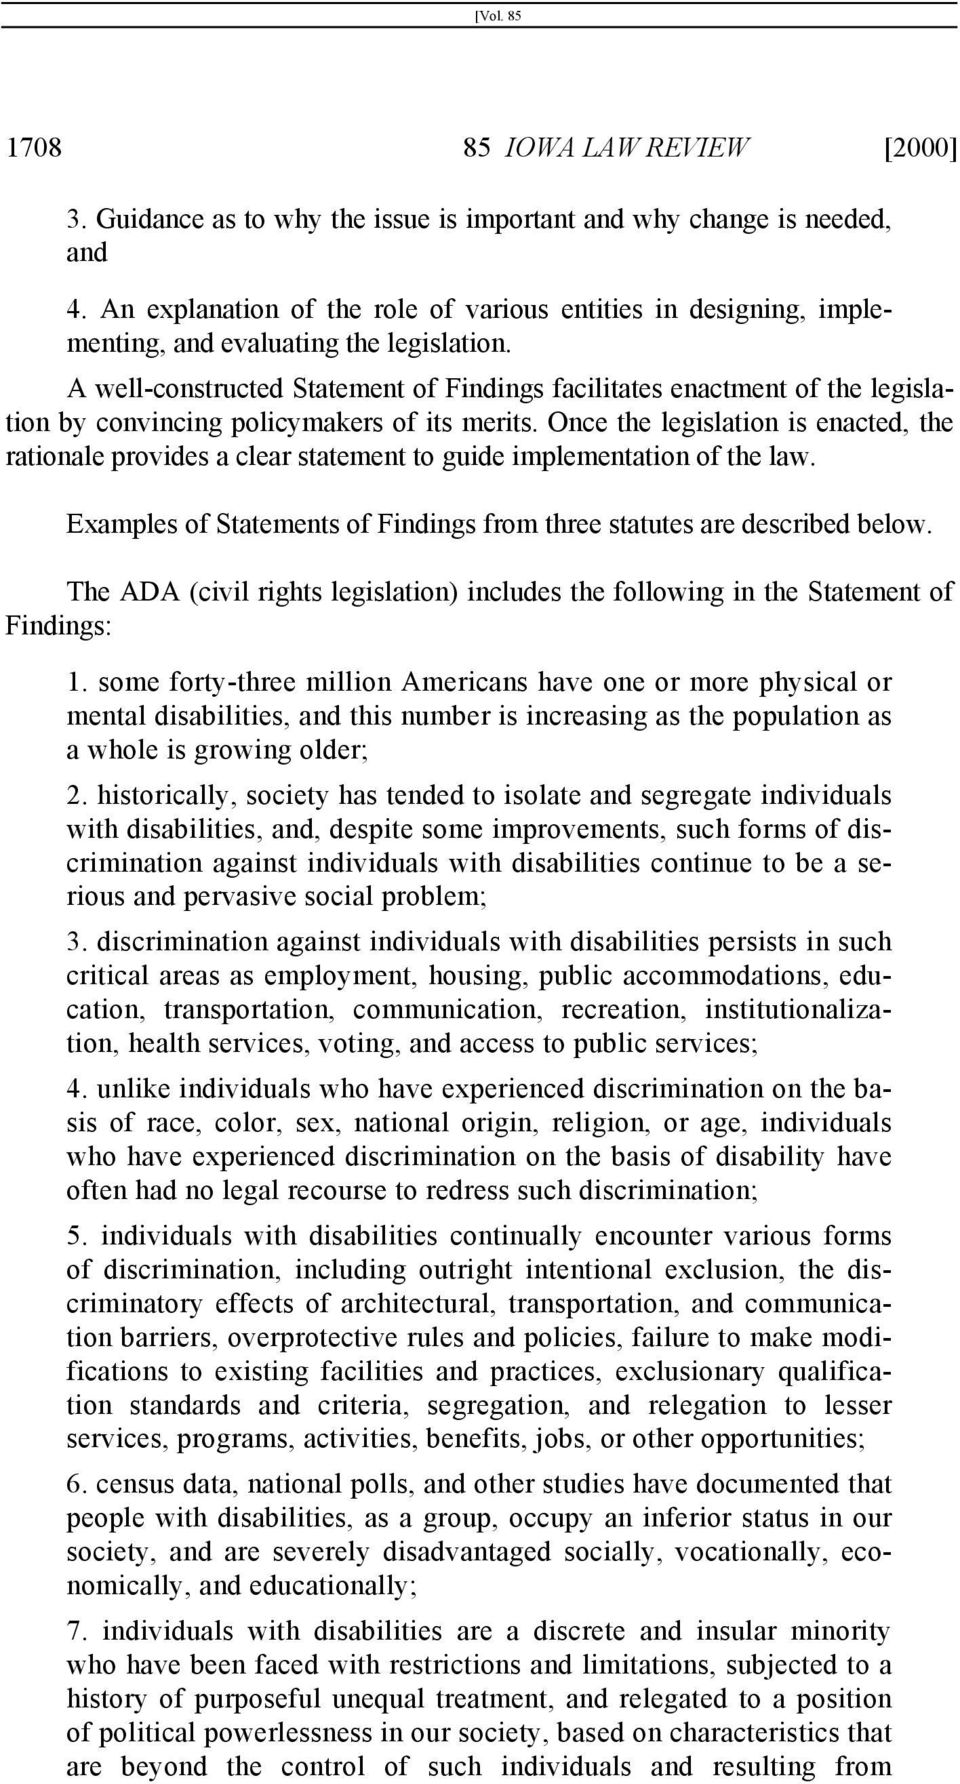 the unfair treatment of people with disabilities in our society Home oral health care for persons with disabilities society's attitude  in our  society with respect to the management and treatment of people with disabilities   amendments to the fair housing act prohibited discrimination in selling and.